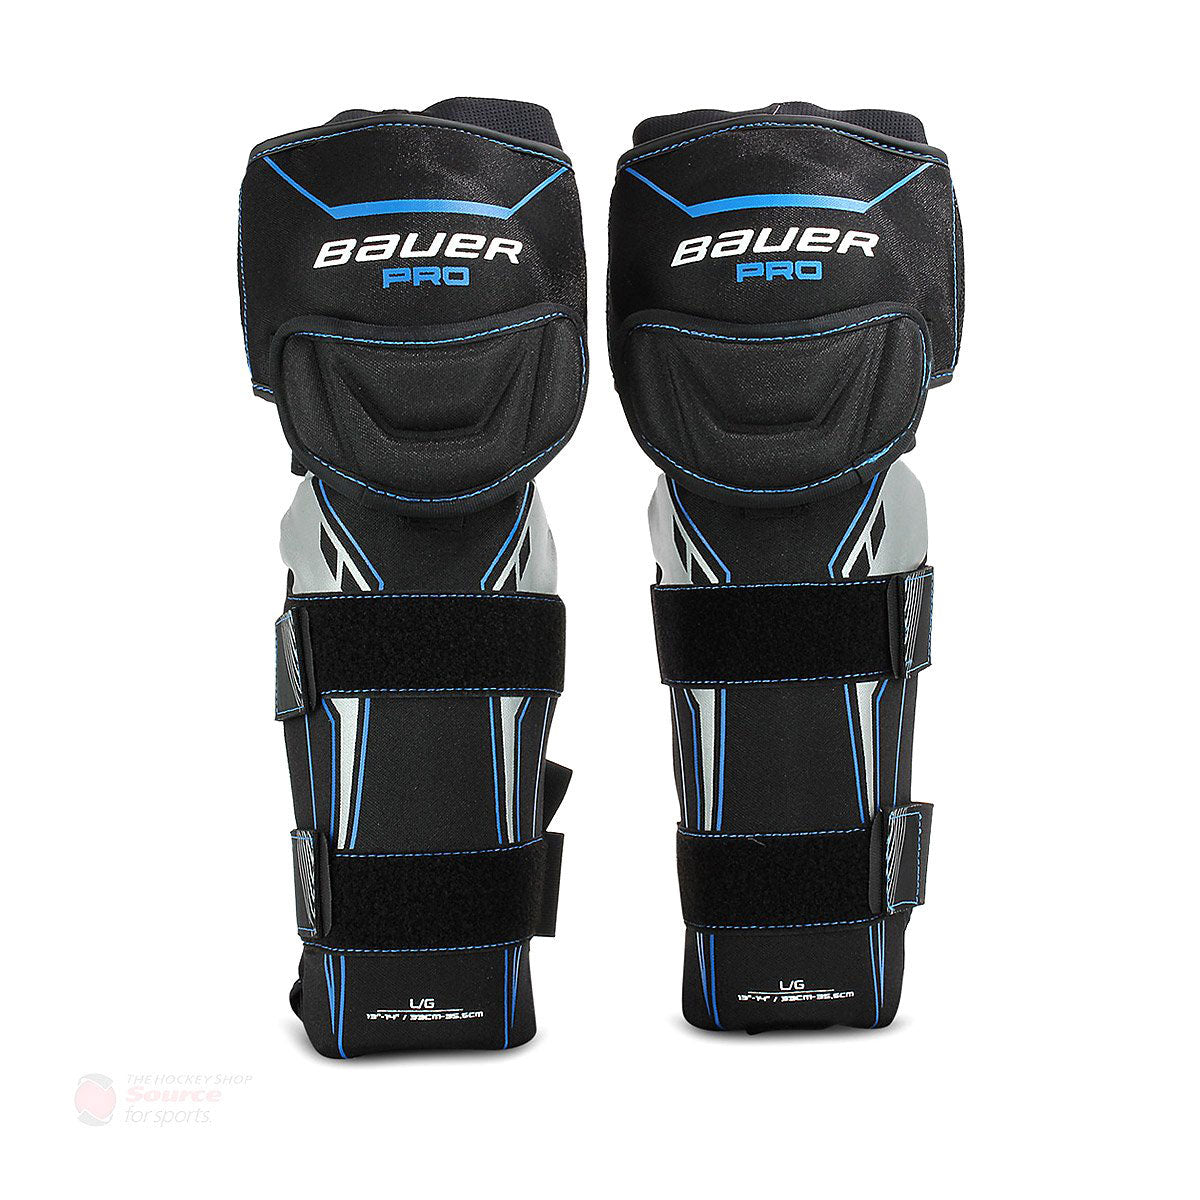 Bauer Pro Senior Ball Hockey Shin Guards